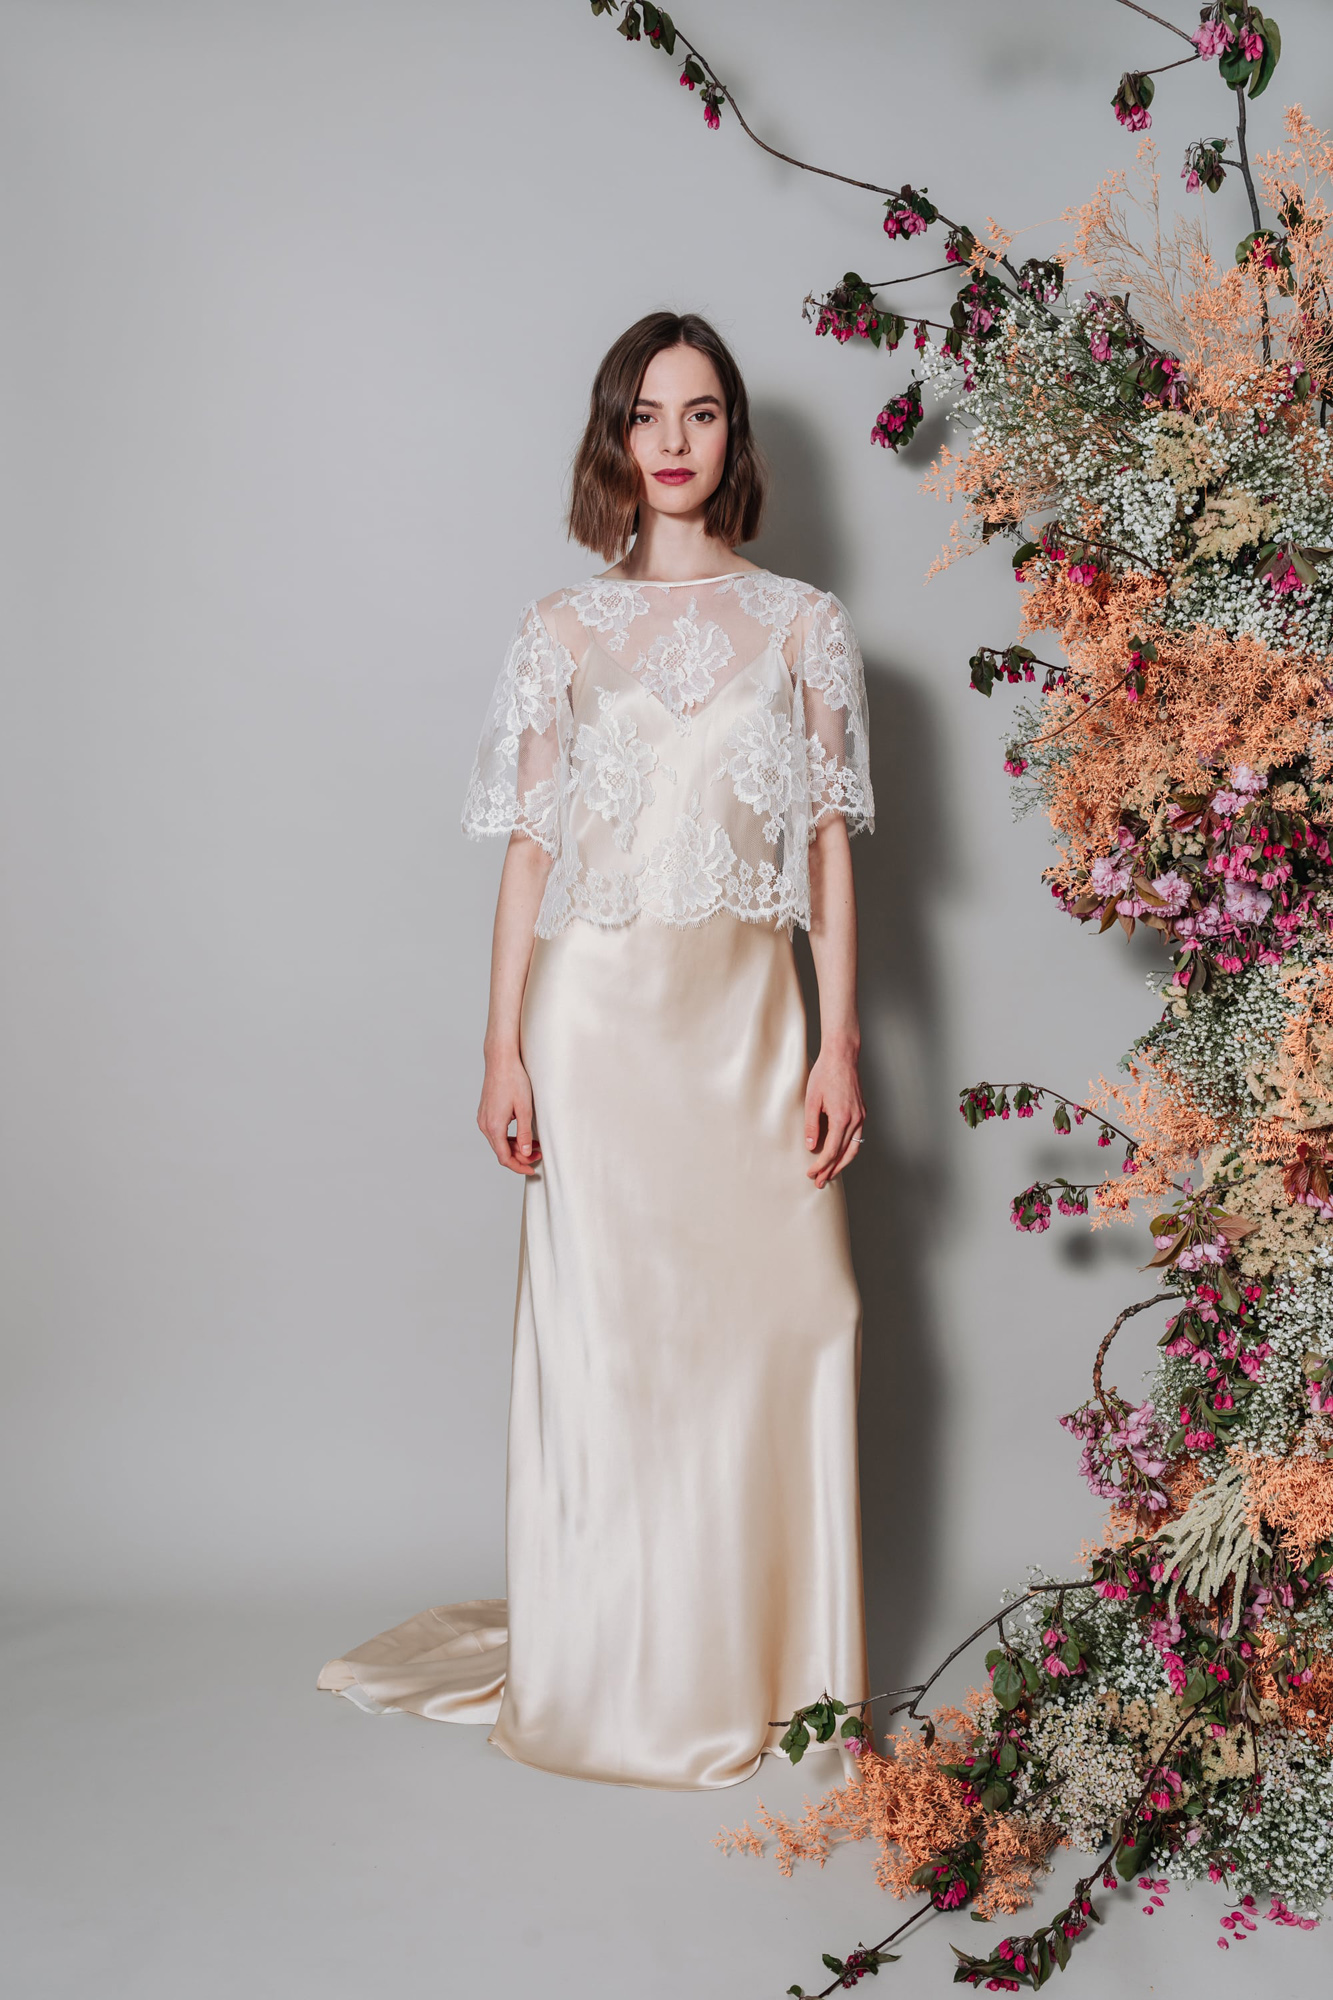 Kate-Beaumont-Sheffield-Rosa-Floral-Lace-Jacket-Thistle-Bias-Cut-Pearl-Silk-Wedding-Gown-2.jpg